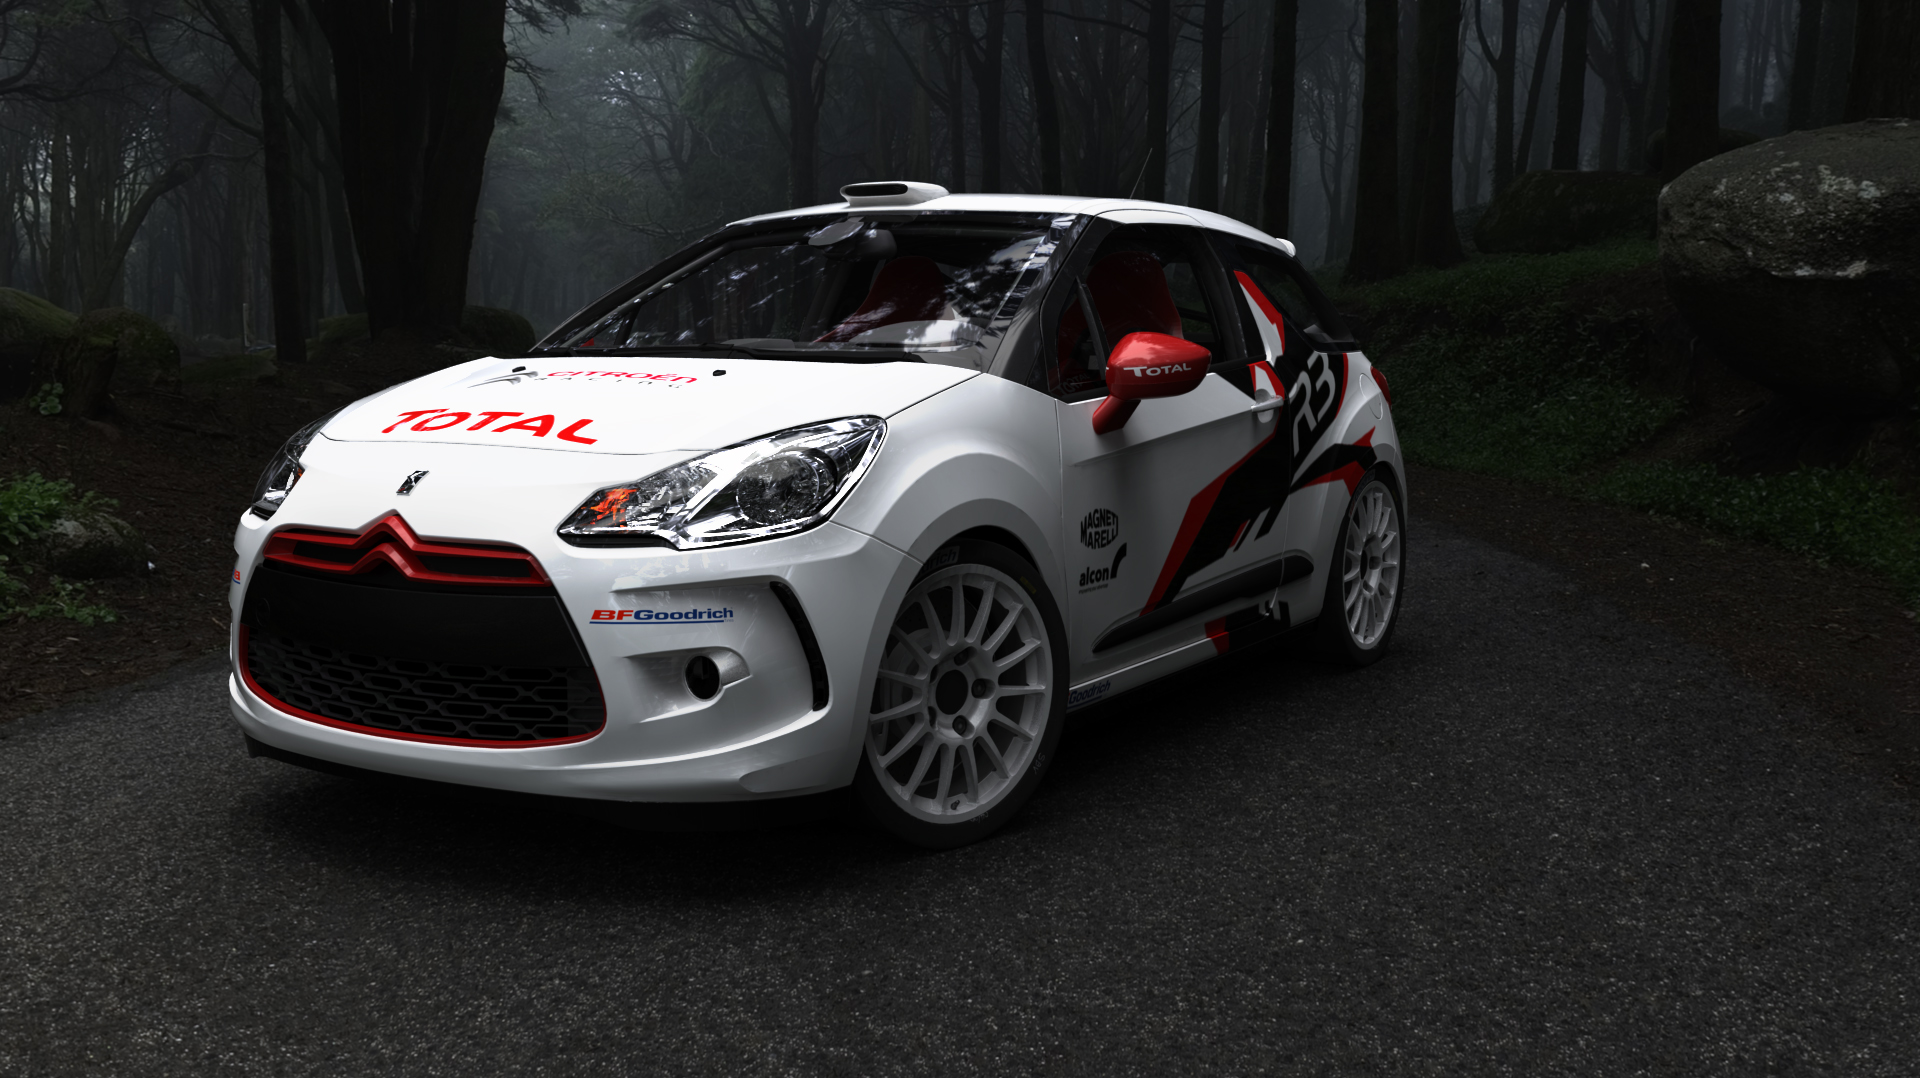 citroen ds3 wrc test car by oppositelock on deviantart. Black Bedroom Furniture Sets. Home Design Ideas